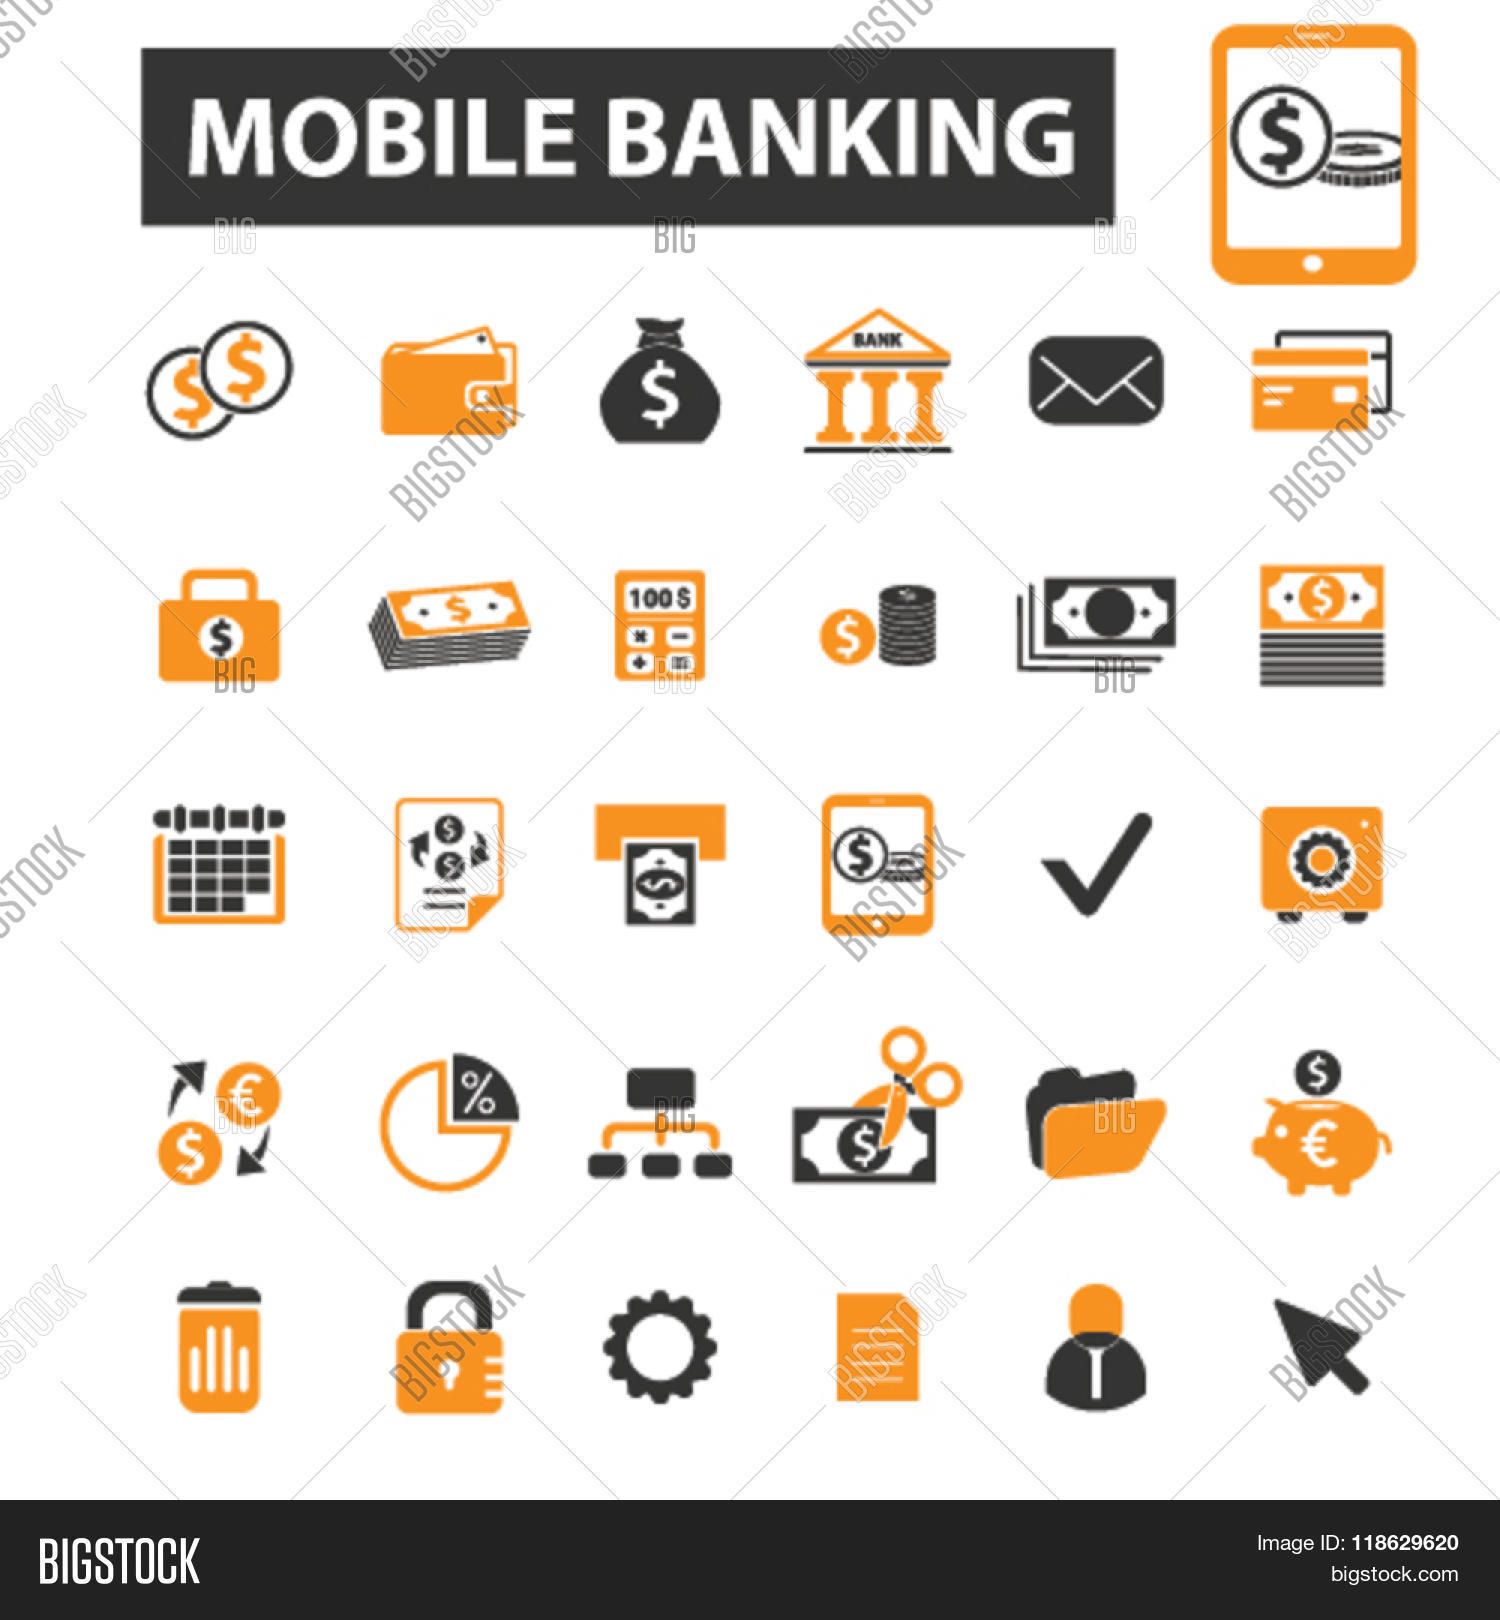 Mobile banking icons mobile vector photo bigstock mobile banking icons mobile banking logo online banking icons vector online banking flat biocorpaavc